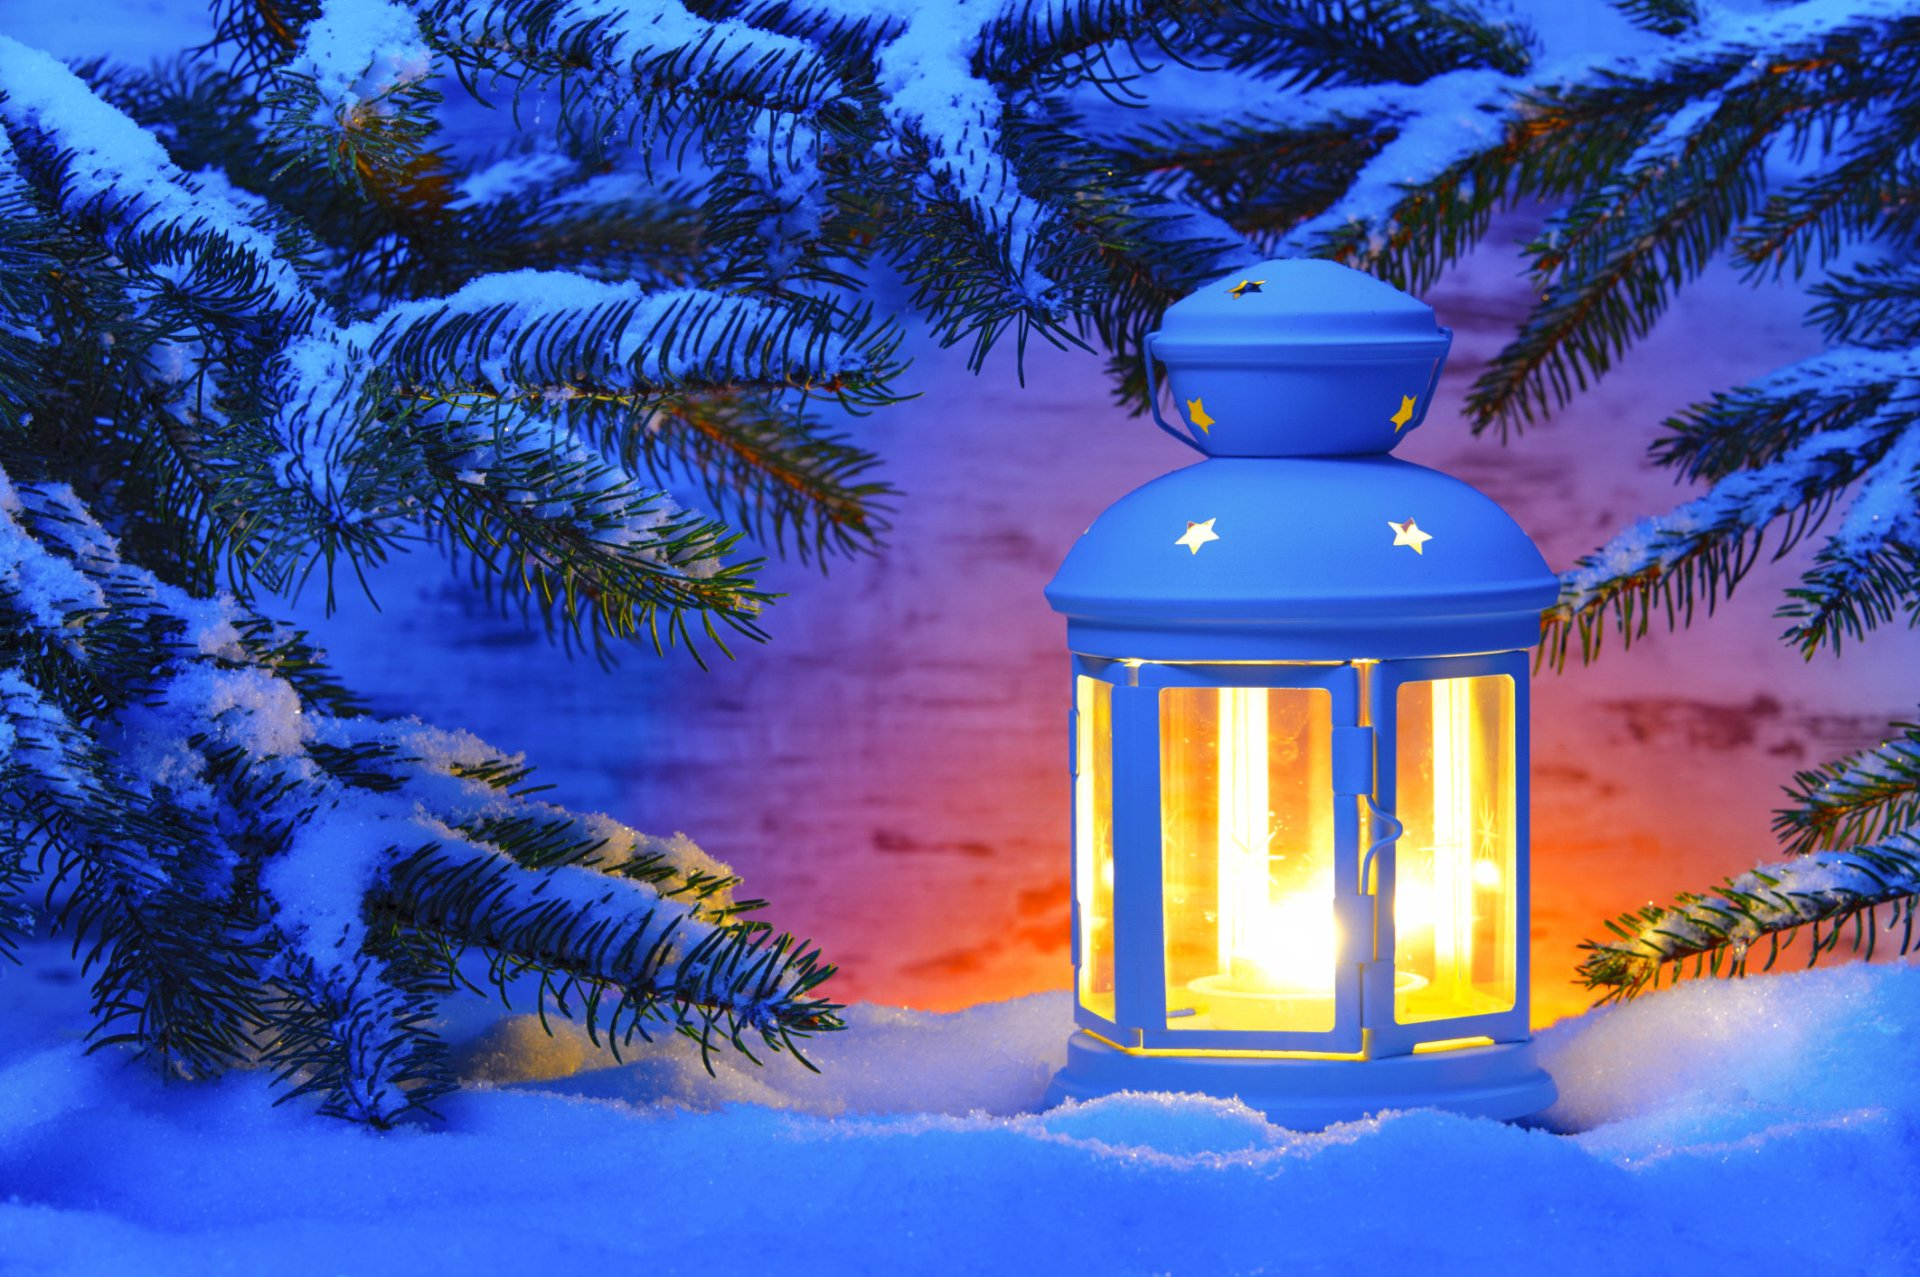 Magic Wallpaper Iphone X Lantern In The Snow Hd Wallpaper Background Image